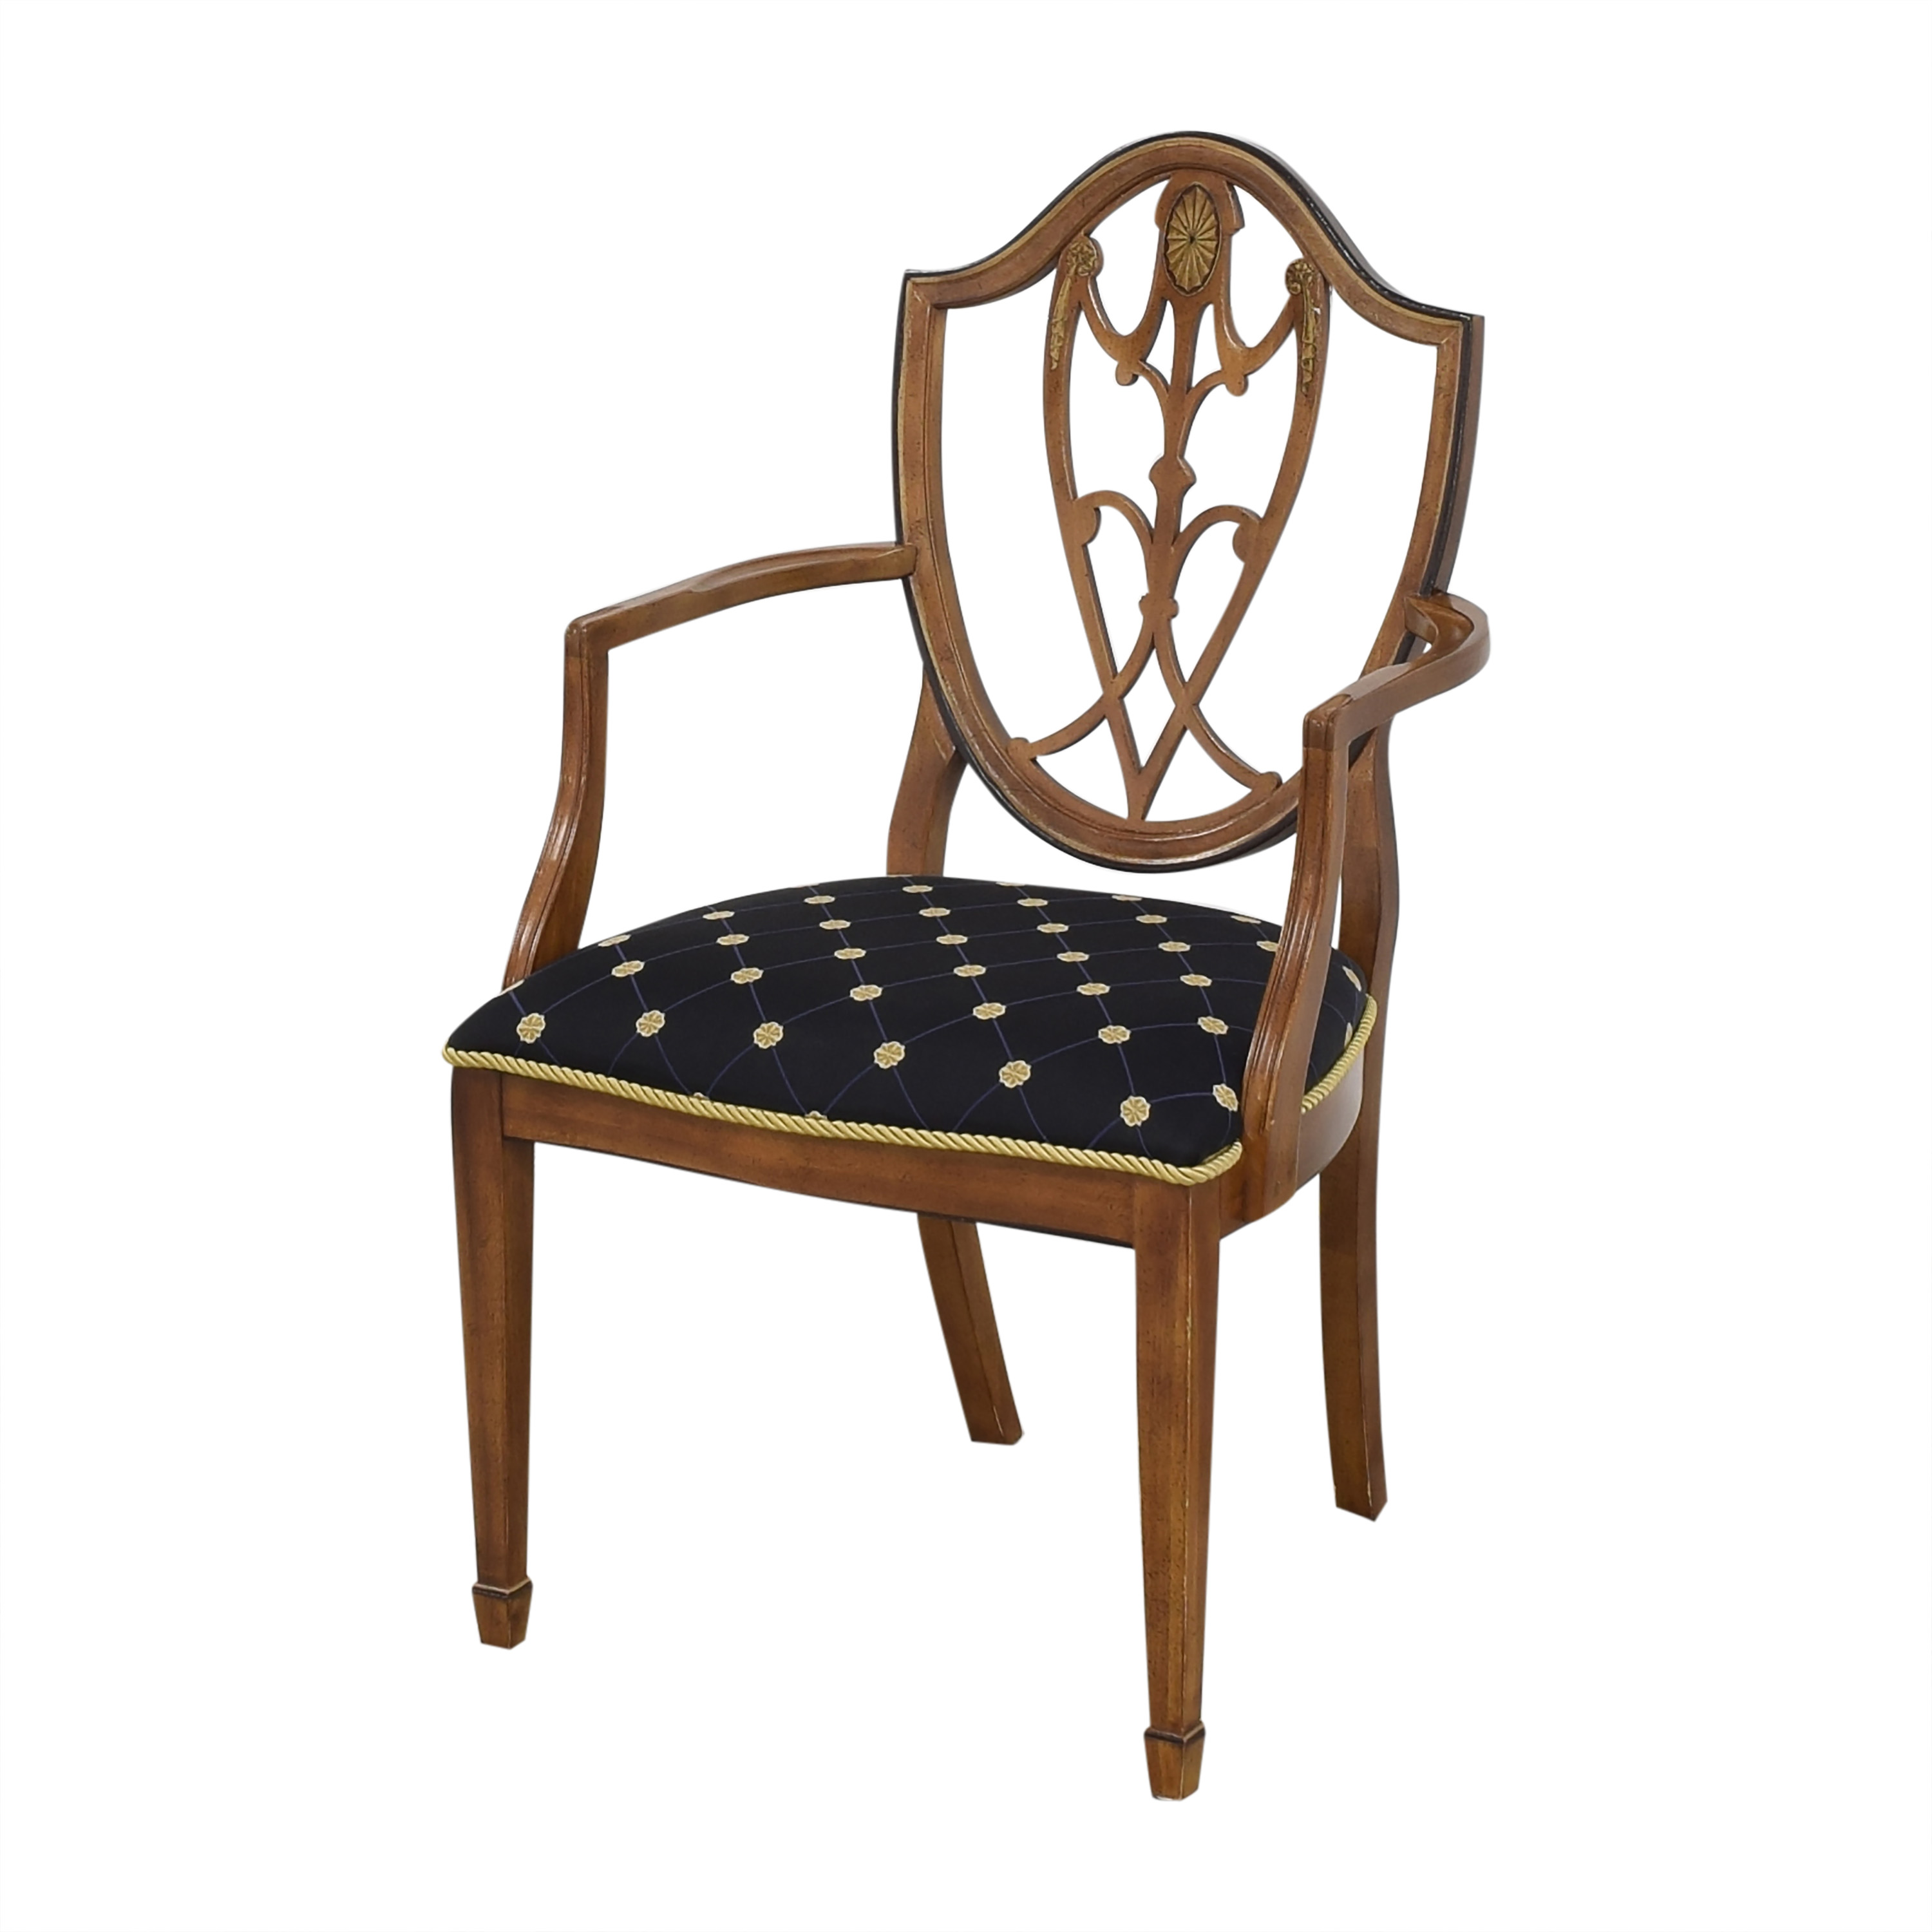 Drexel Drexel Upholstered Dining Arm Chairs Chairs